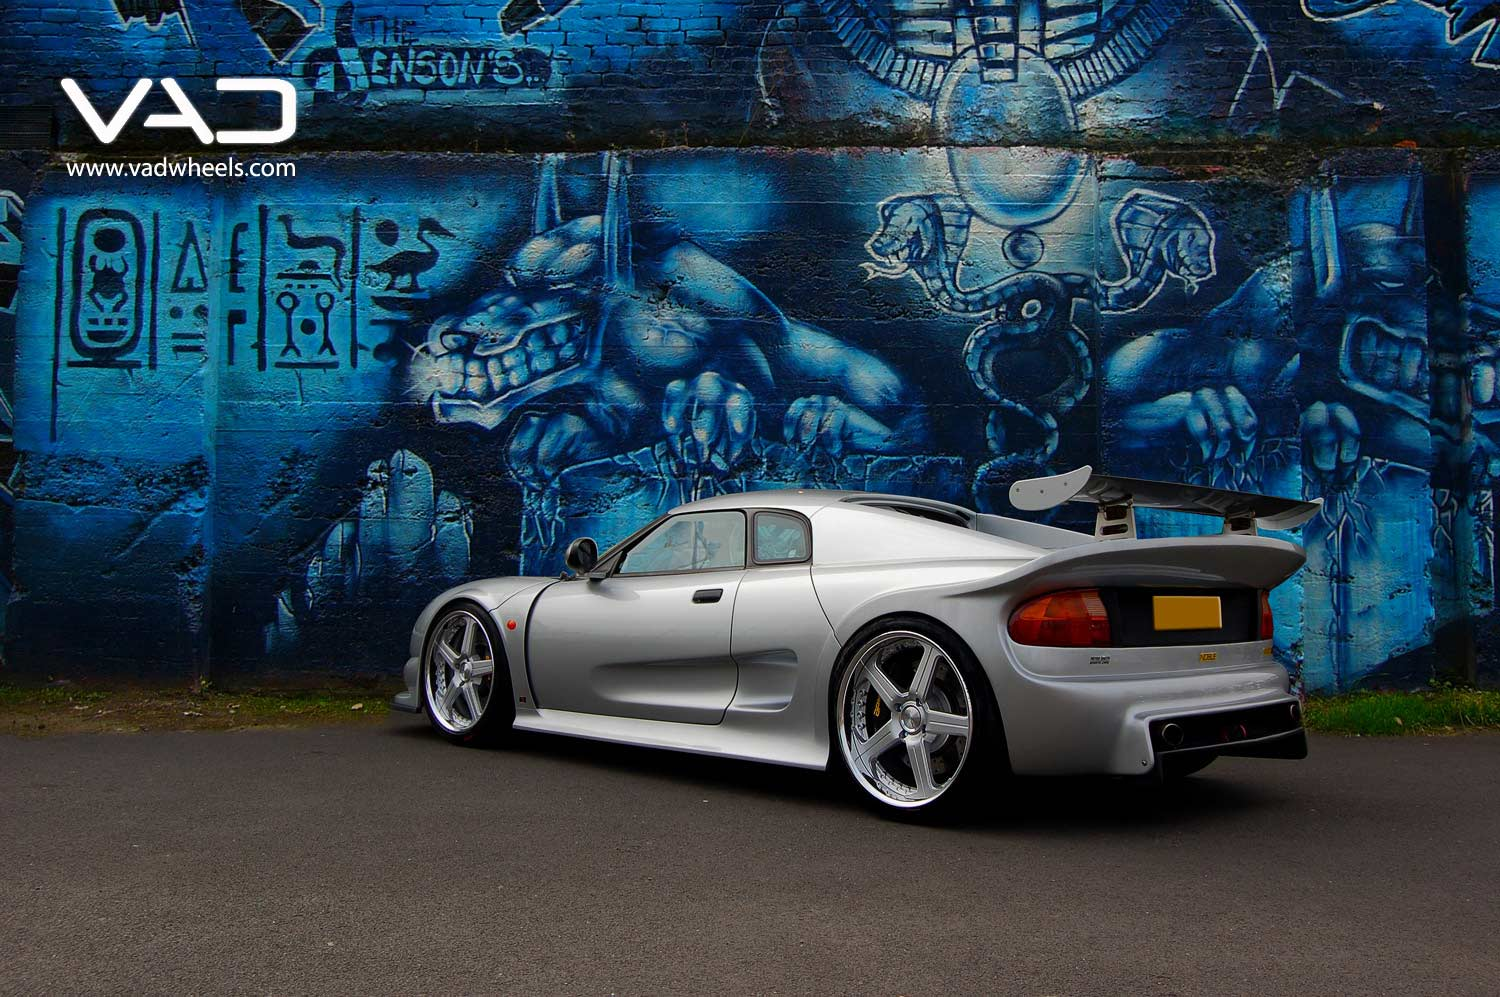 Noble-GTO-Fitted-With-19''-Trafficstar-RTS-Silver-Rear-Profile